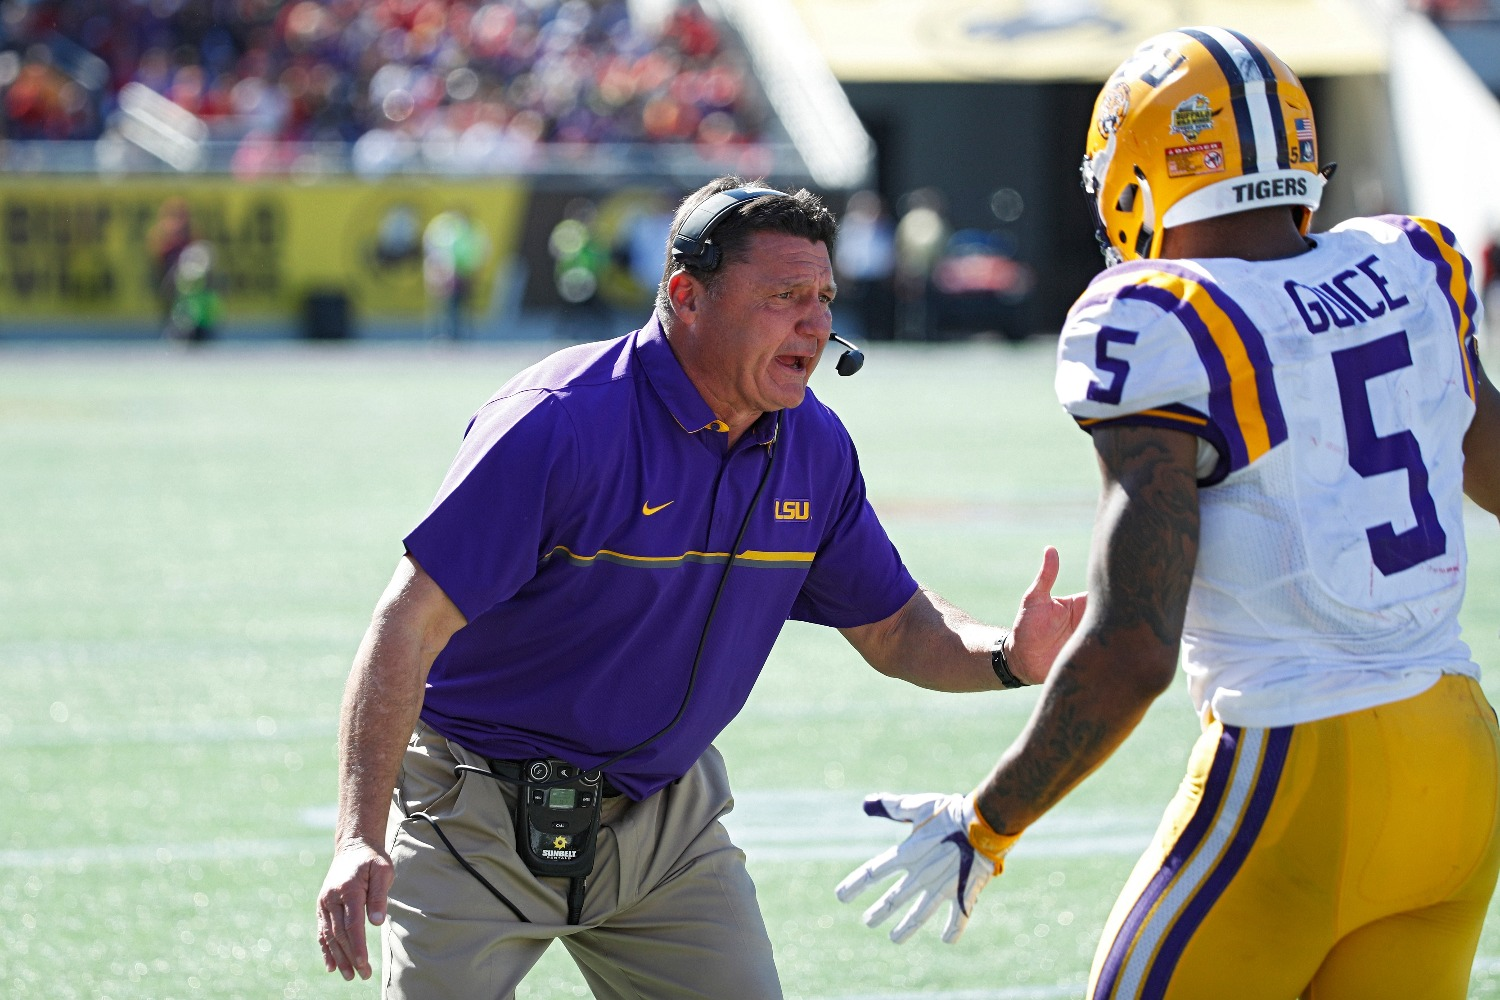 LSU head coach Ed Orgeron delivered a powerful denial that he had knowledge of the rape allegations against Derrius Guice, who starred for the Tigers before getting drafted by the Washington Football Team.